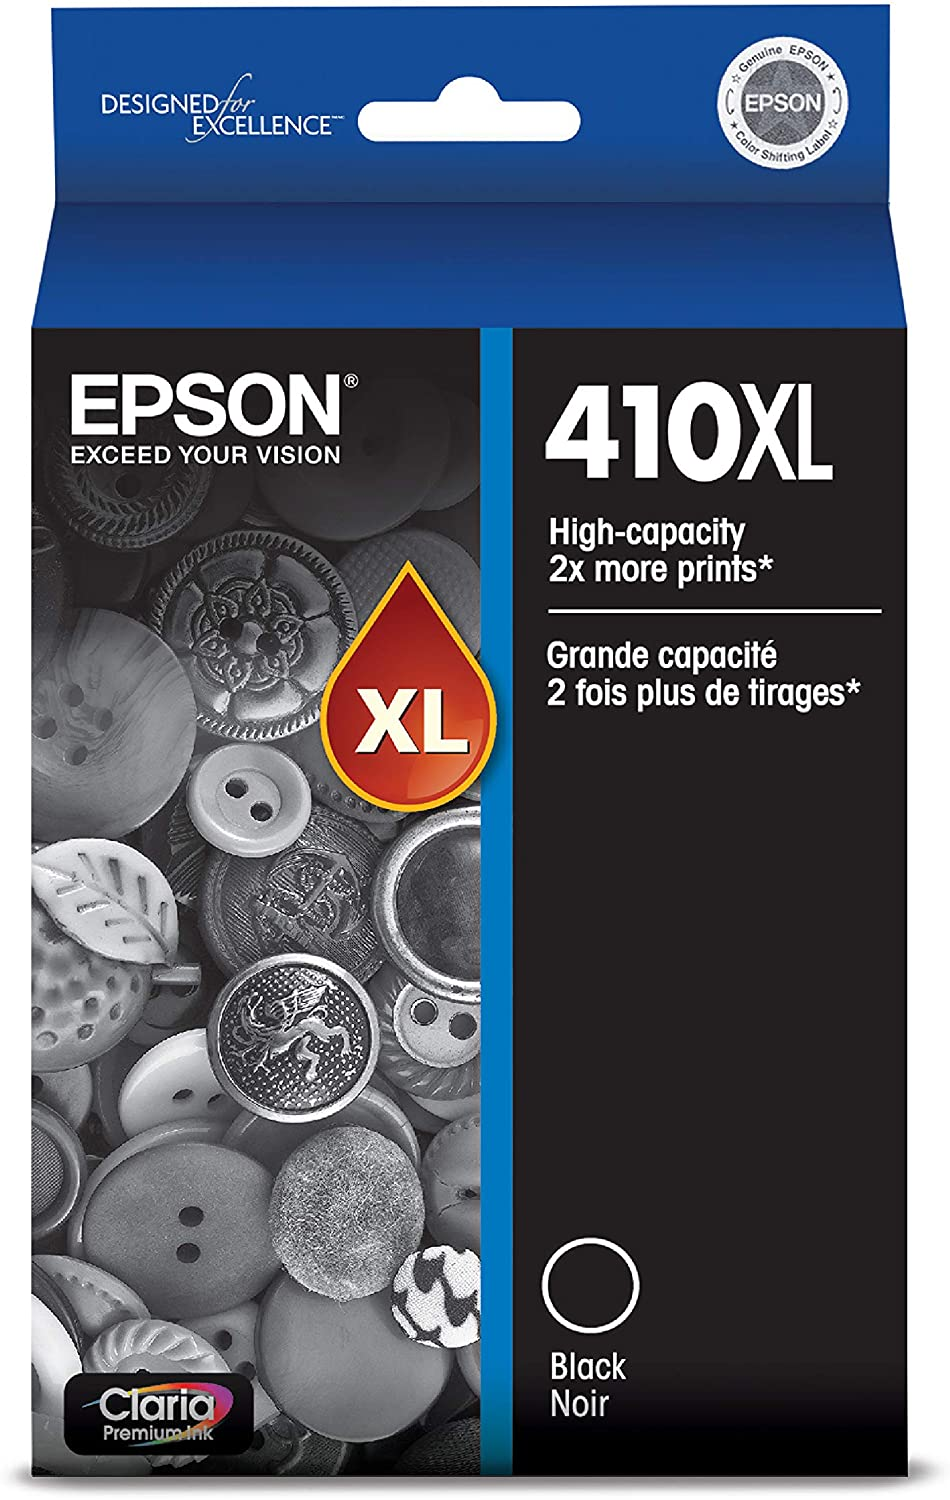 Epson T410XL020 Premium Black High Capacity Cartridge Ink